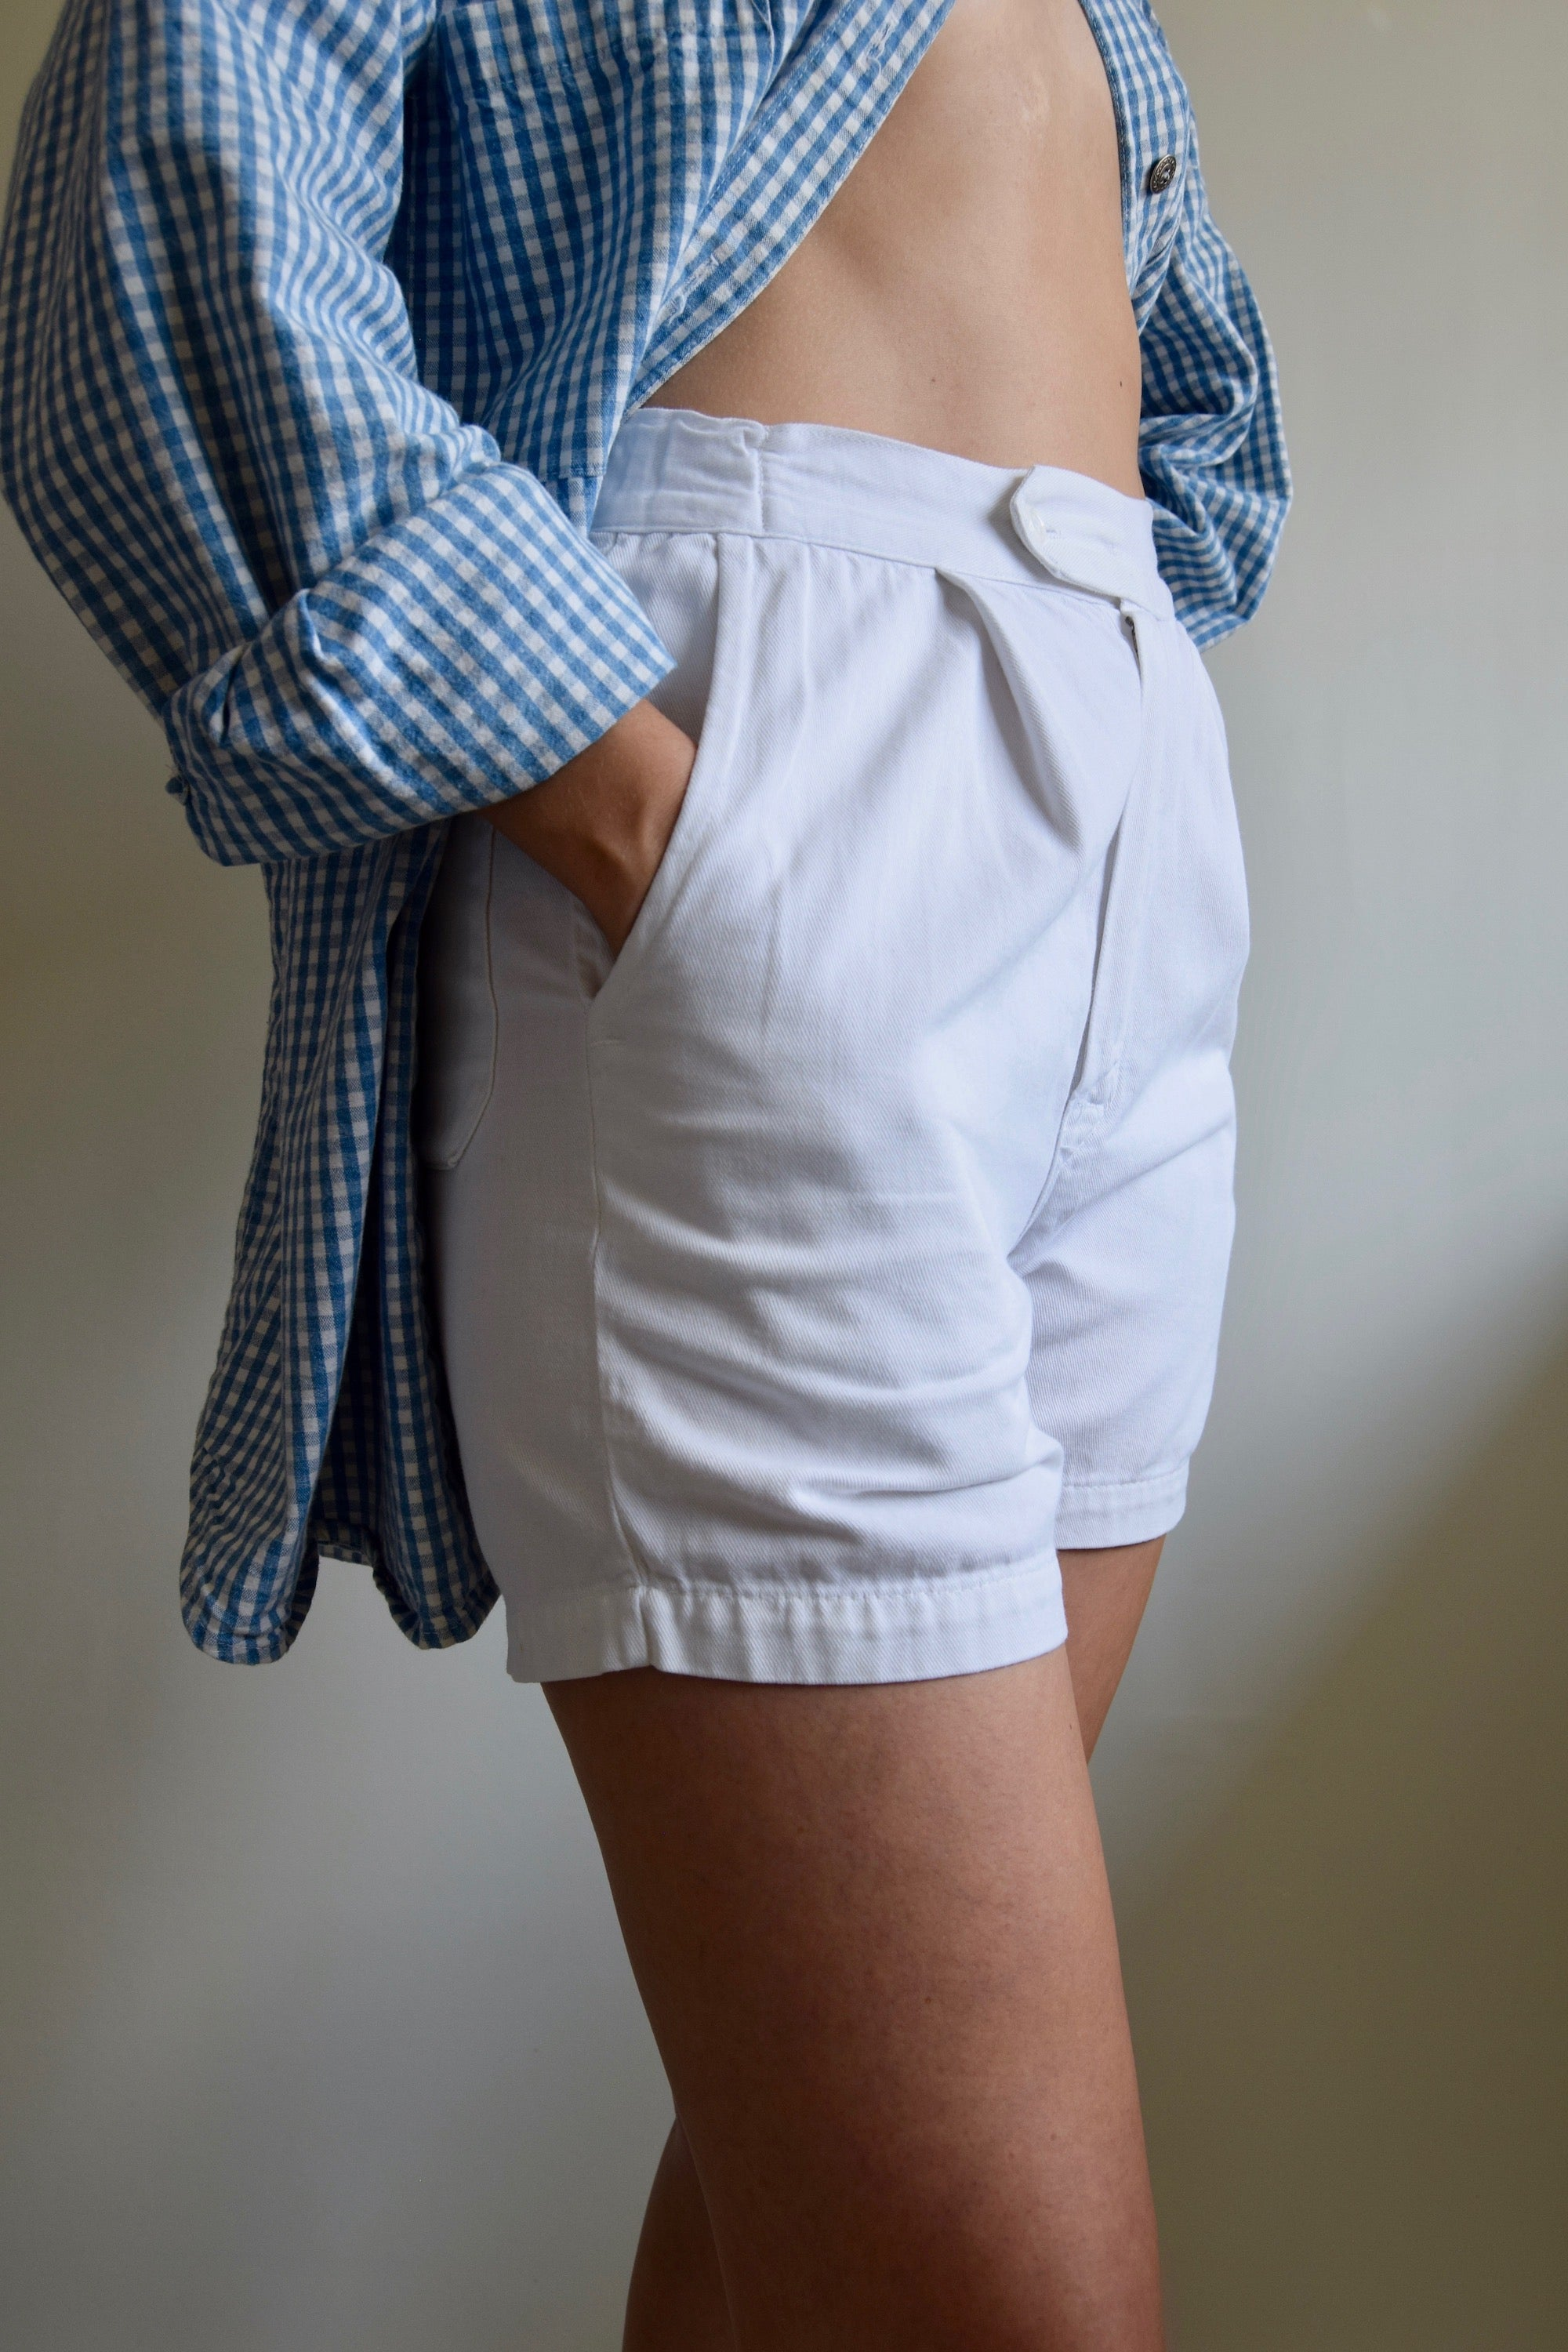 Vintage 1960's Wilson Cotton Tennis Shorts